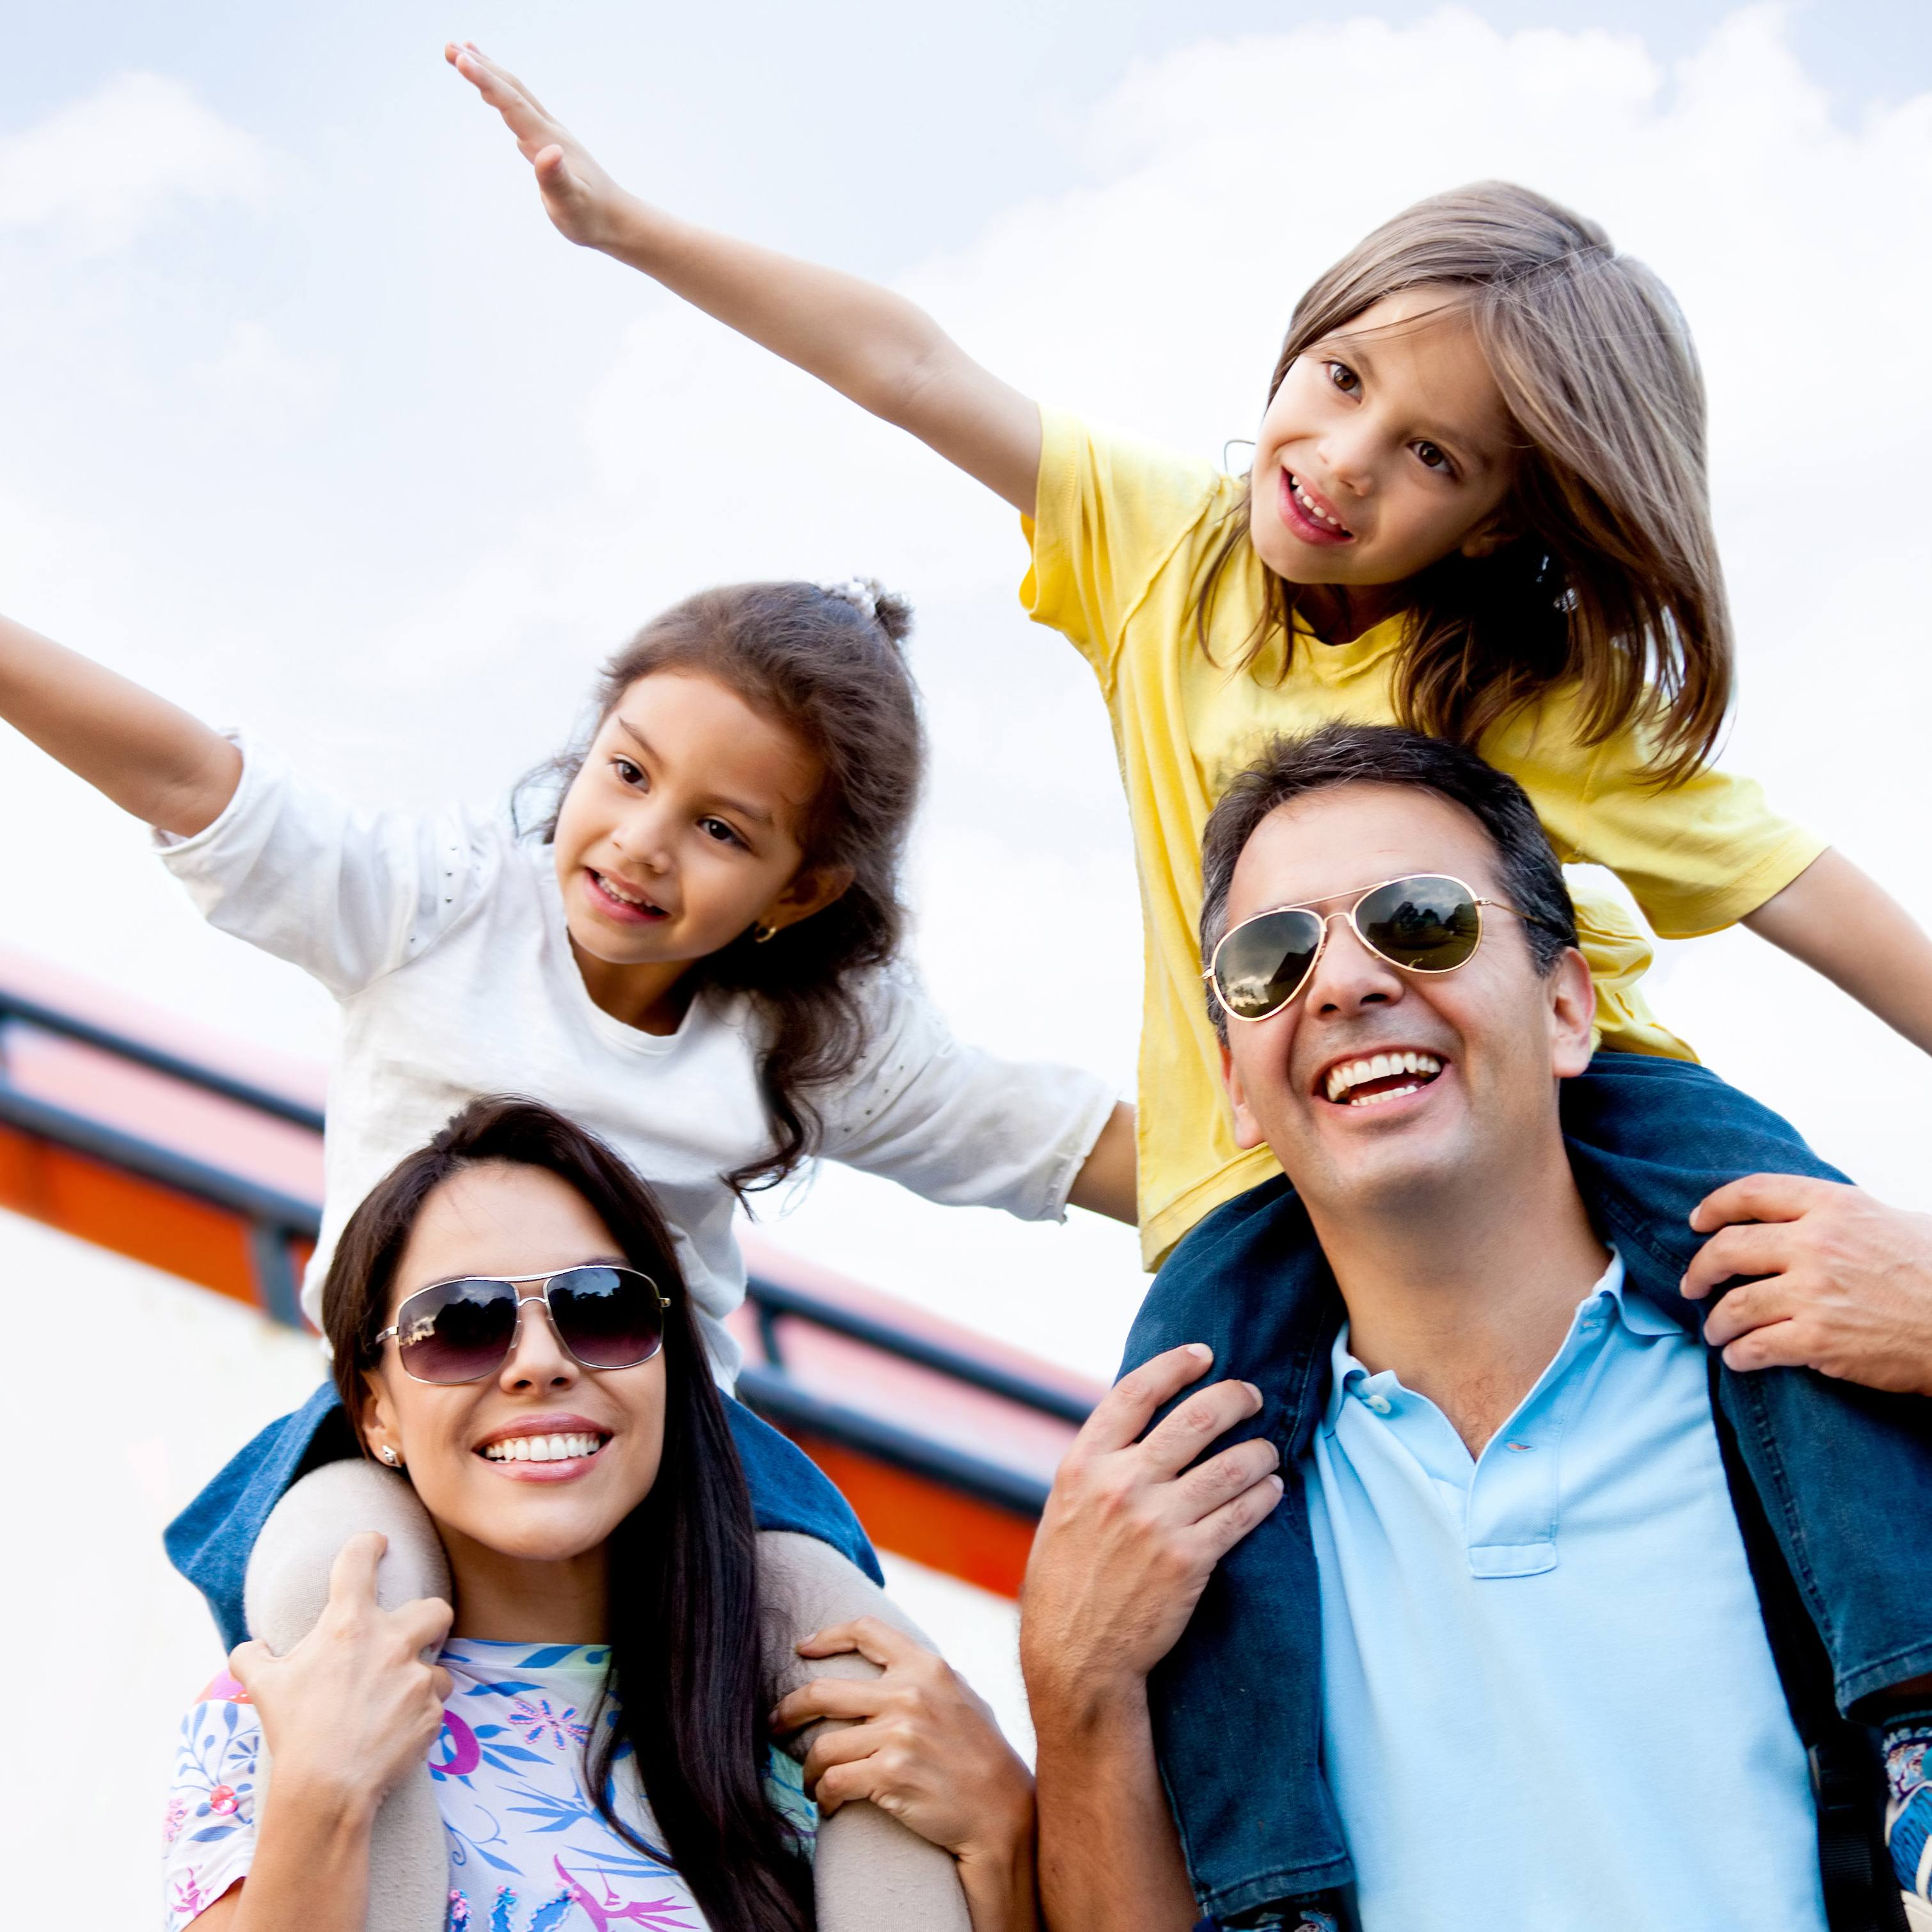 a happy young family at the airport